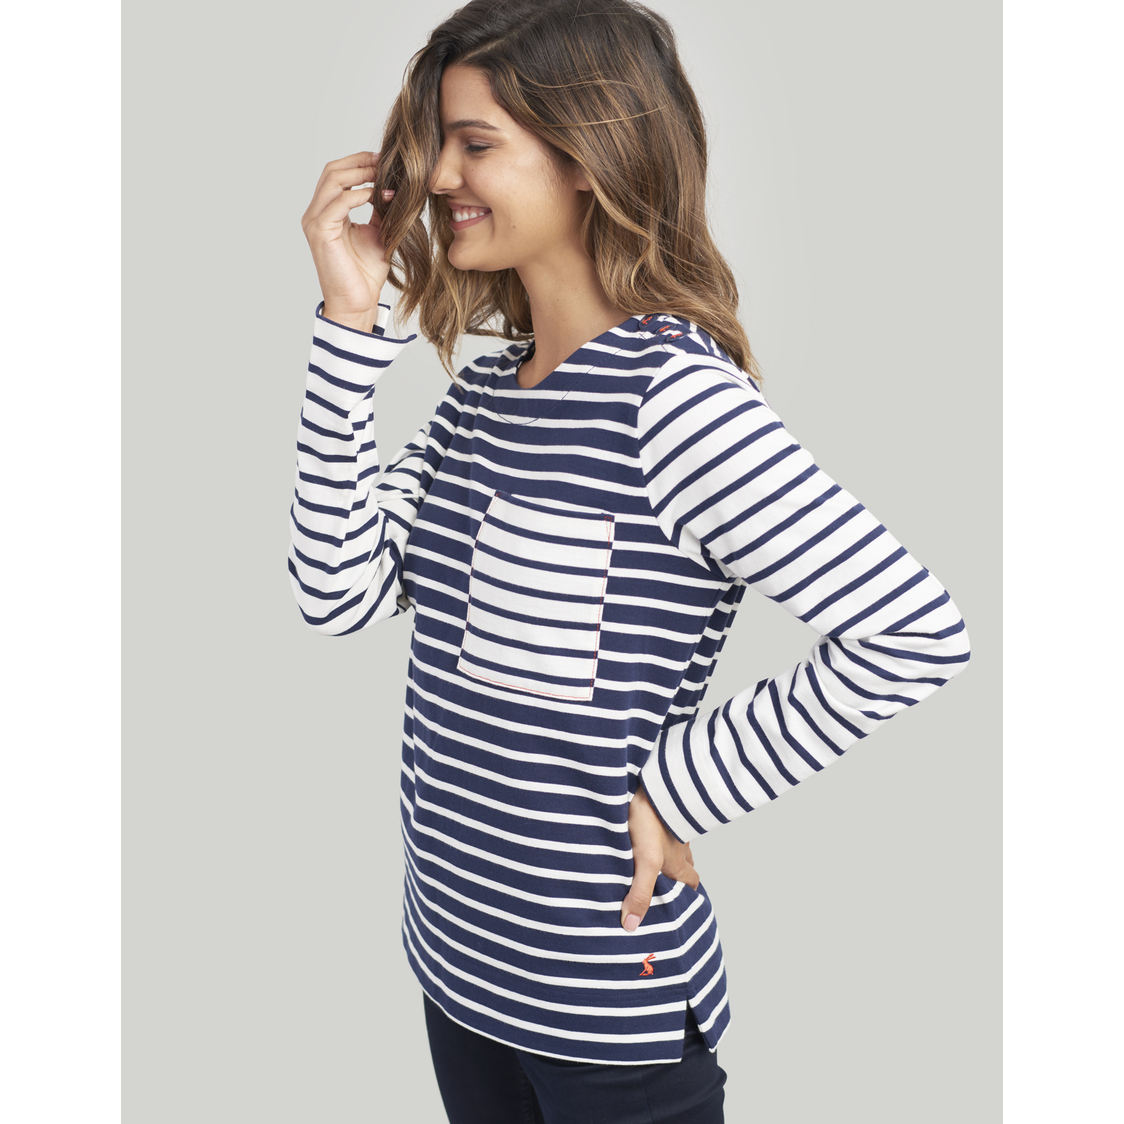 Renee Striped Sweatshirt